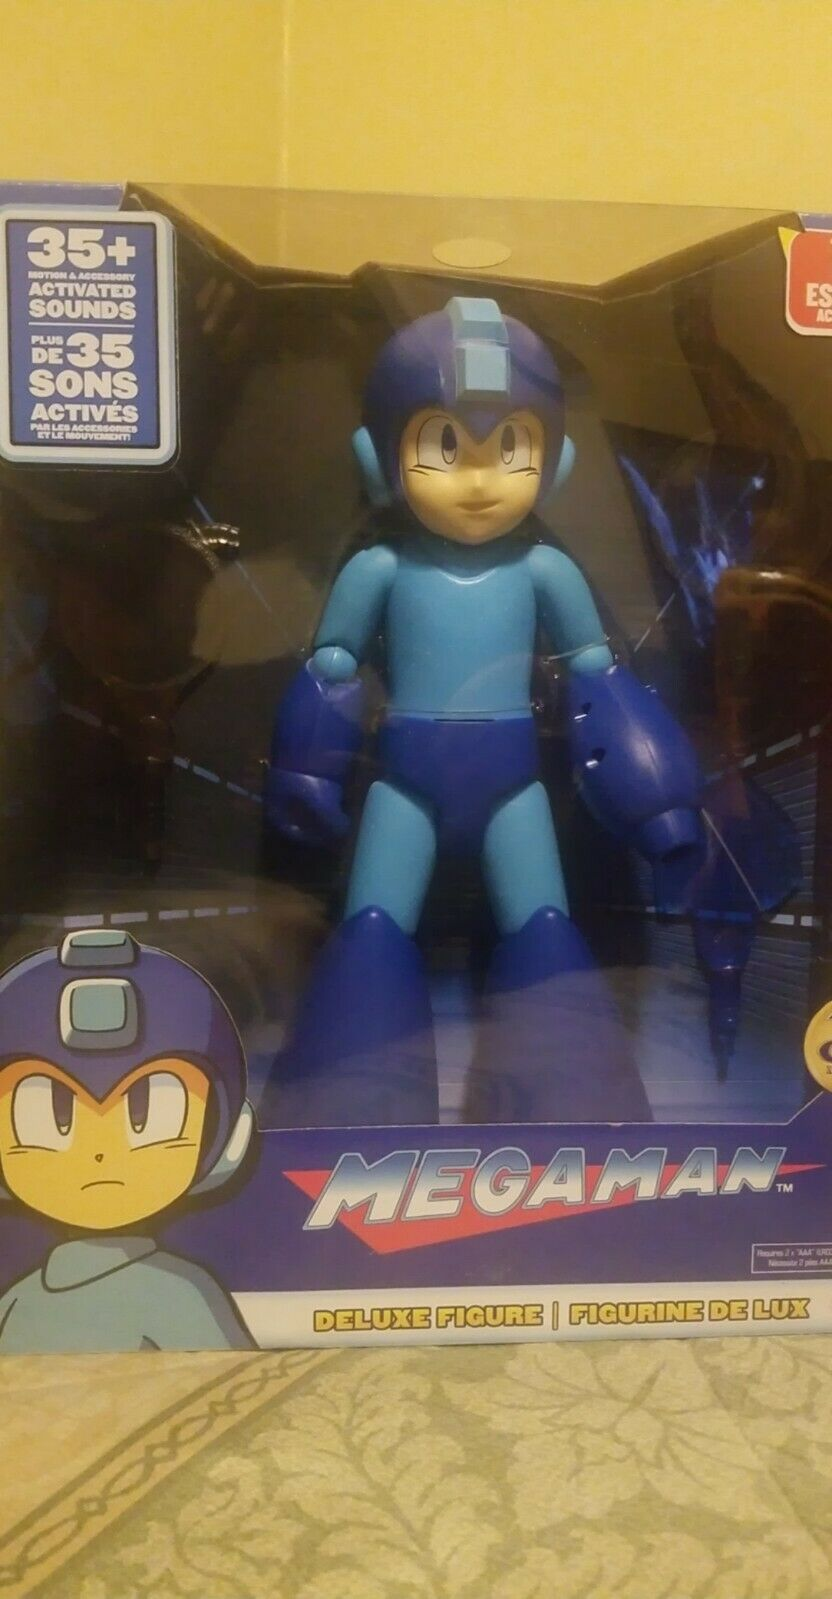 Megaman Deluxe Figure 30th Anniversary 35+ Motion Activated Sounds Accessories